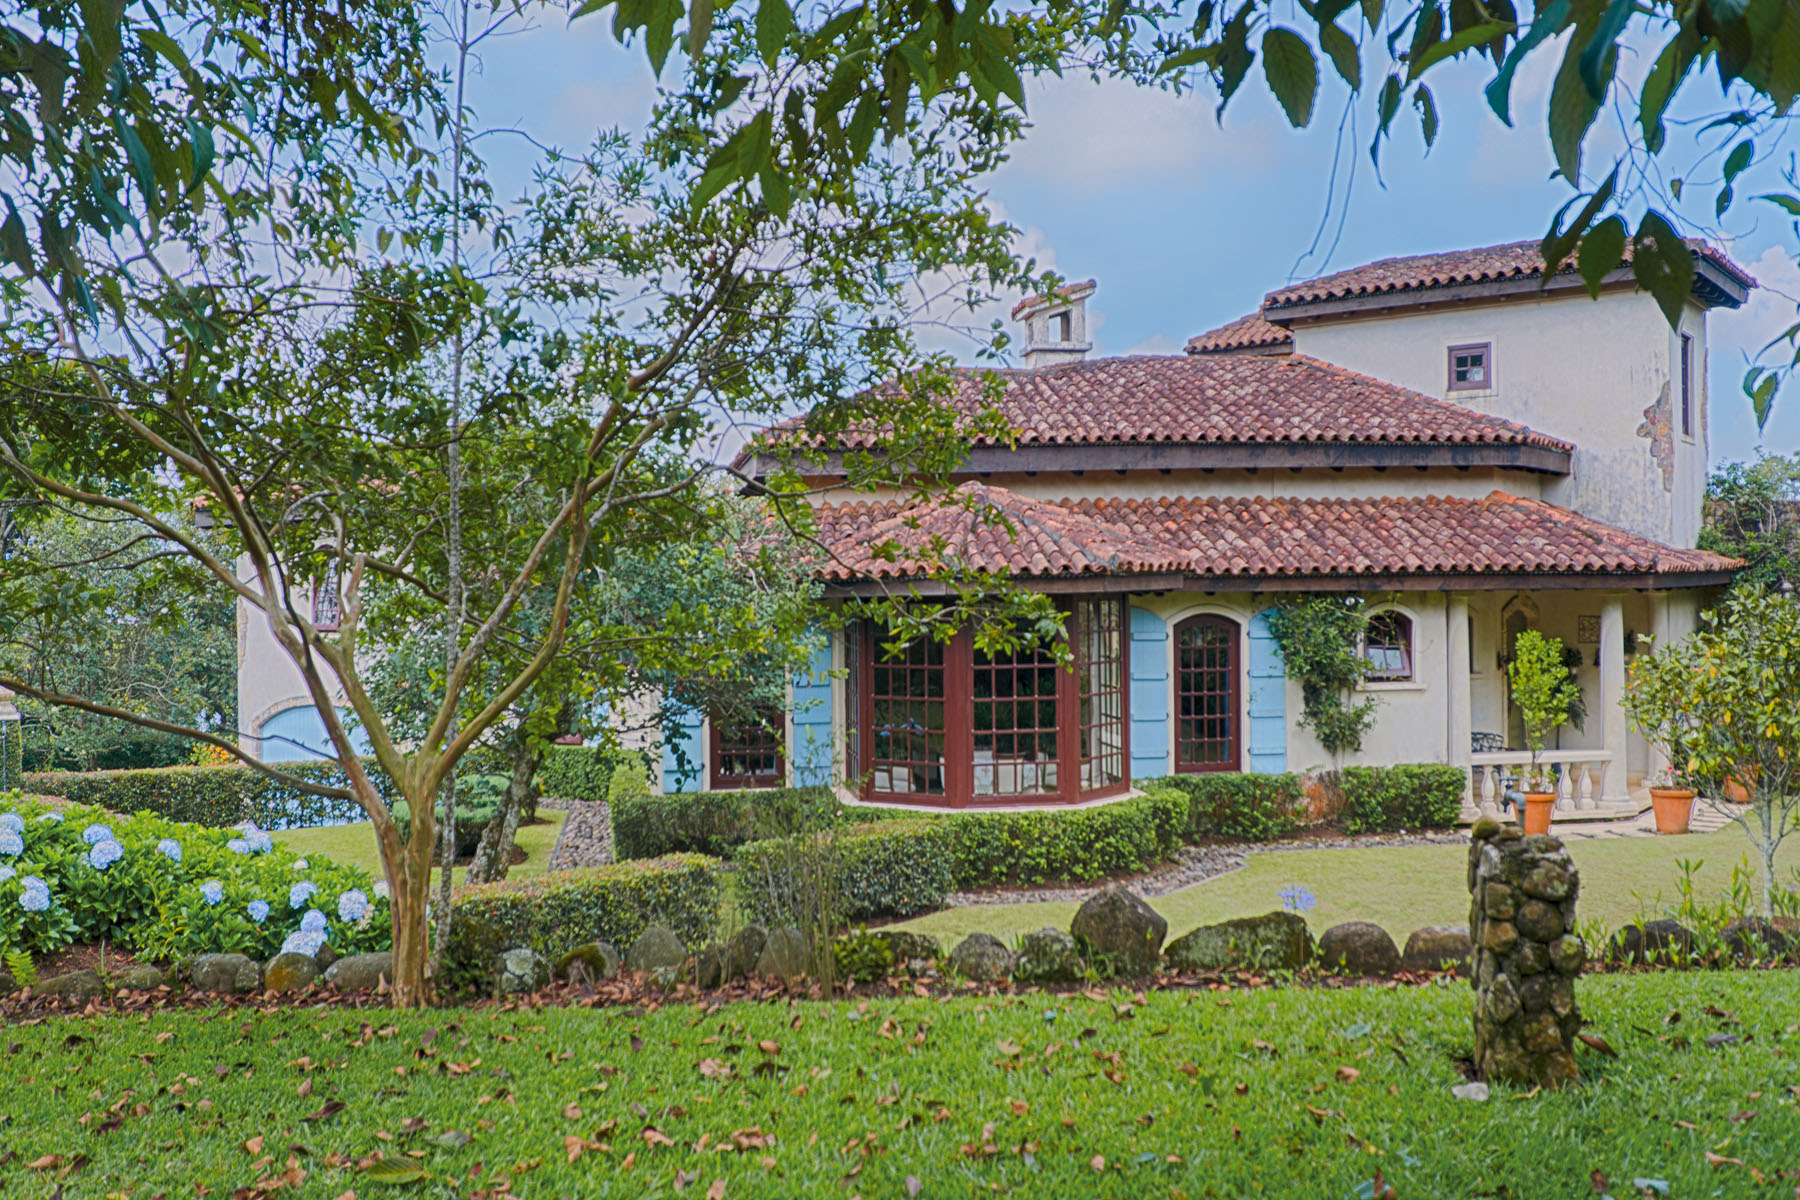 Single Family Homes for Sale at Jardin Provenzal San Isidro, Heredia Costa Rica